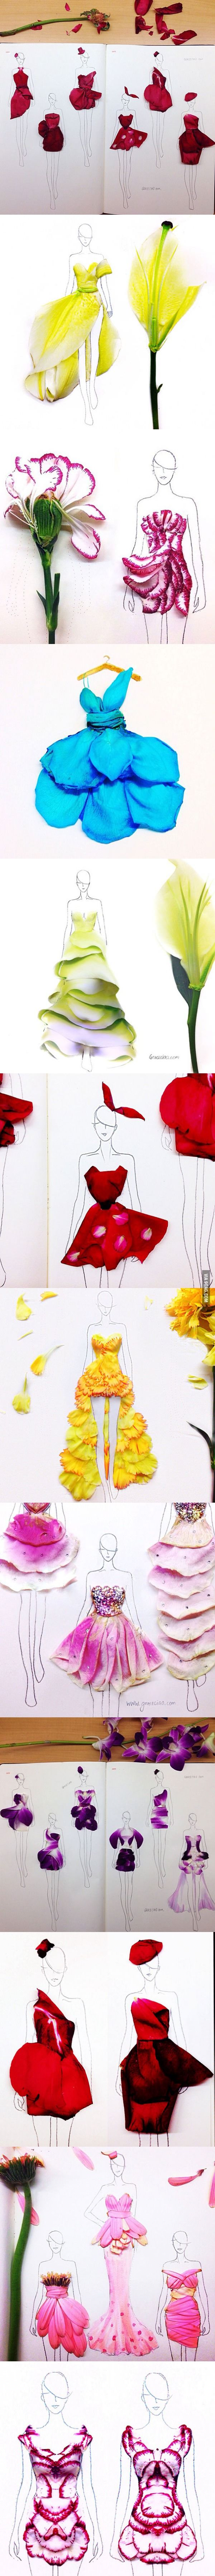 Clever Fashion Illustrations With Real Flower Petals As Clothing. Amazing.